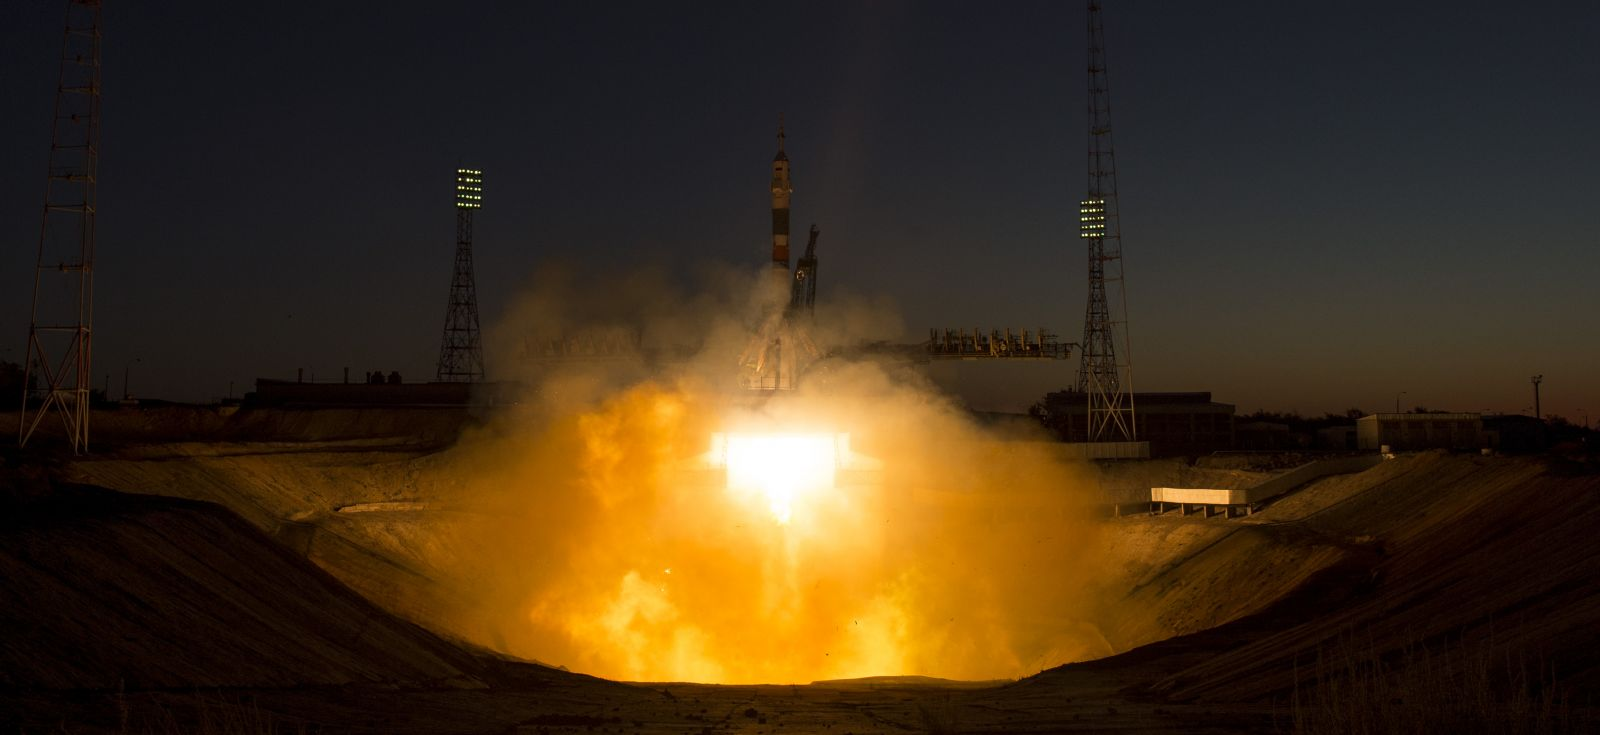 The Soyuz MS-05 rocket is launched with Expedition 52 flight engineer Sergei Ryazanskiy of Roscosmos, flight engineer Randy Bresnik of NASA, and flight engineer Paolo Nespoli of ESA (European Space Agency), Friday, July 28, 2017, at the Baikonur Cosmodrome in Kazakhstan. Ryazanskiy, Bresnik, and Nespoli will spend the next four-and-a-half months living and working aboard the International Space Station. (Click to enlarge) Photo & Caption Credit: Joel Kowsky / NASA